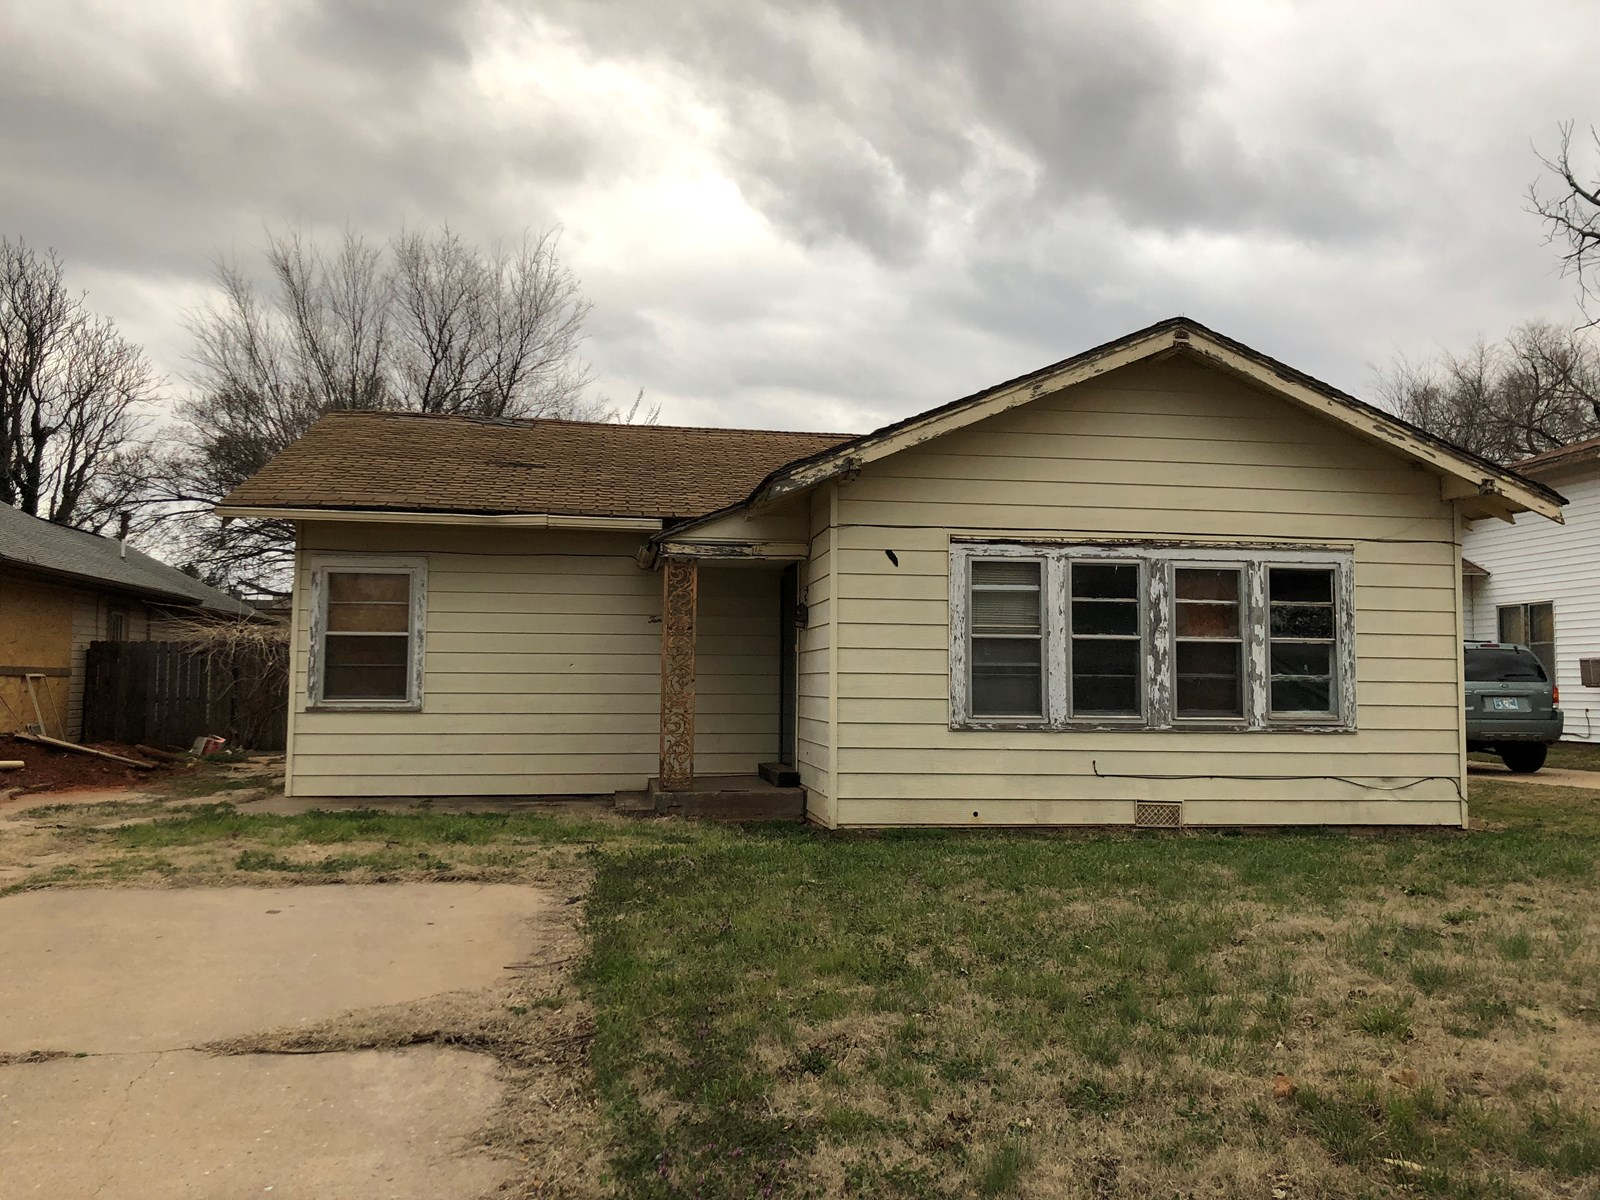 HOME FOR SALE IN ELK CITY - INVESTMENT PROPERTY